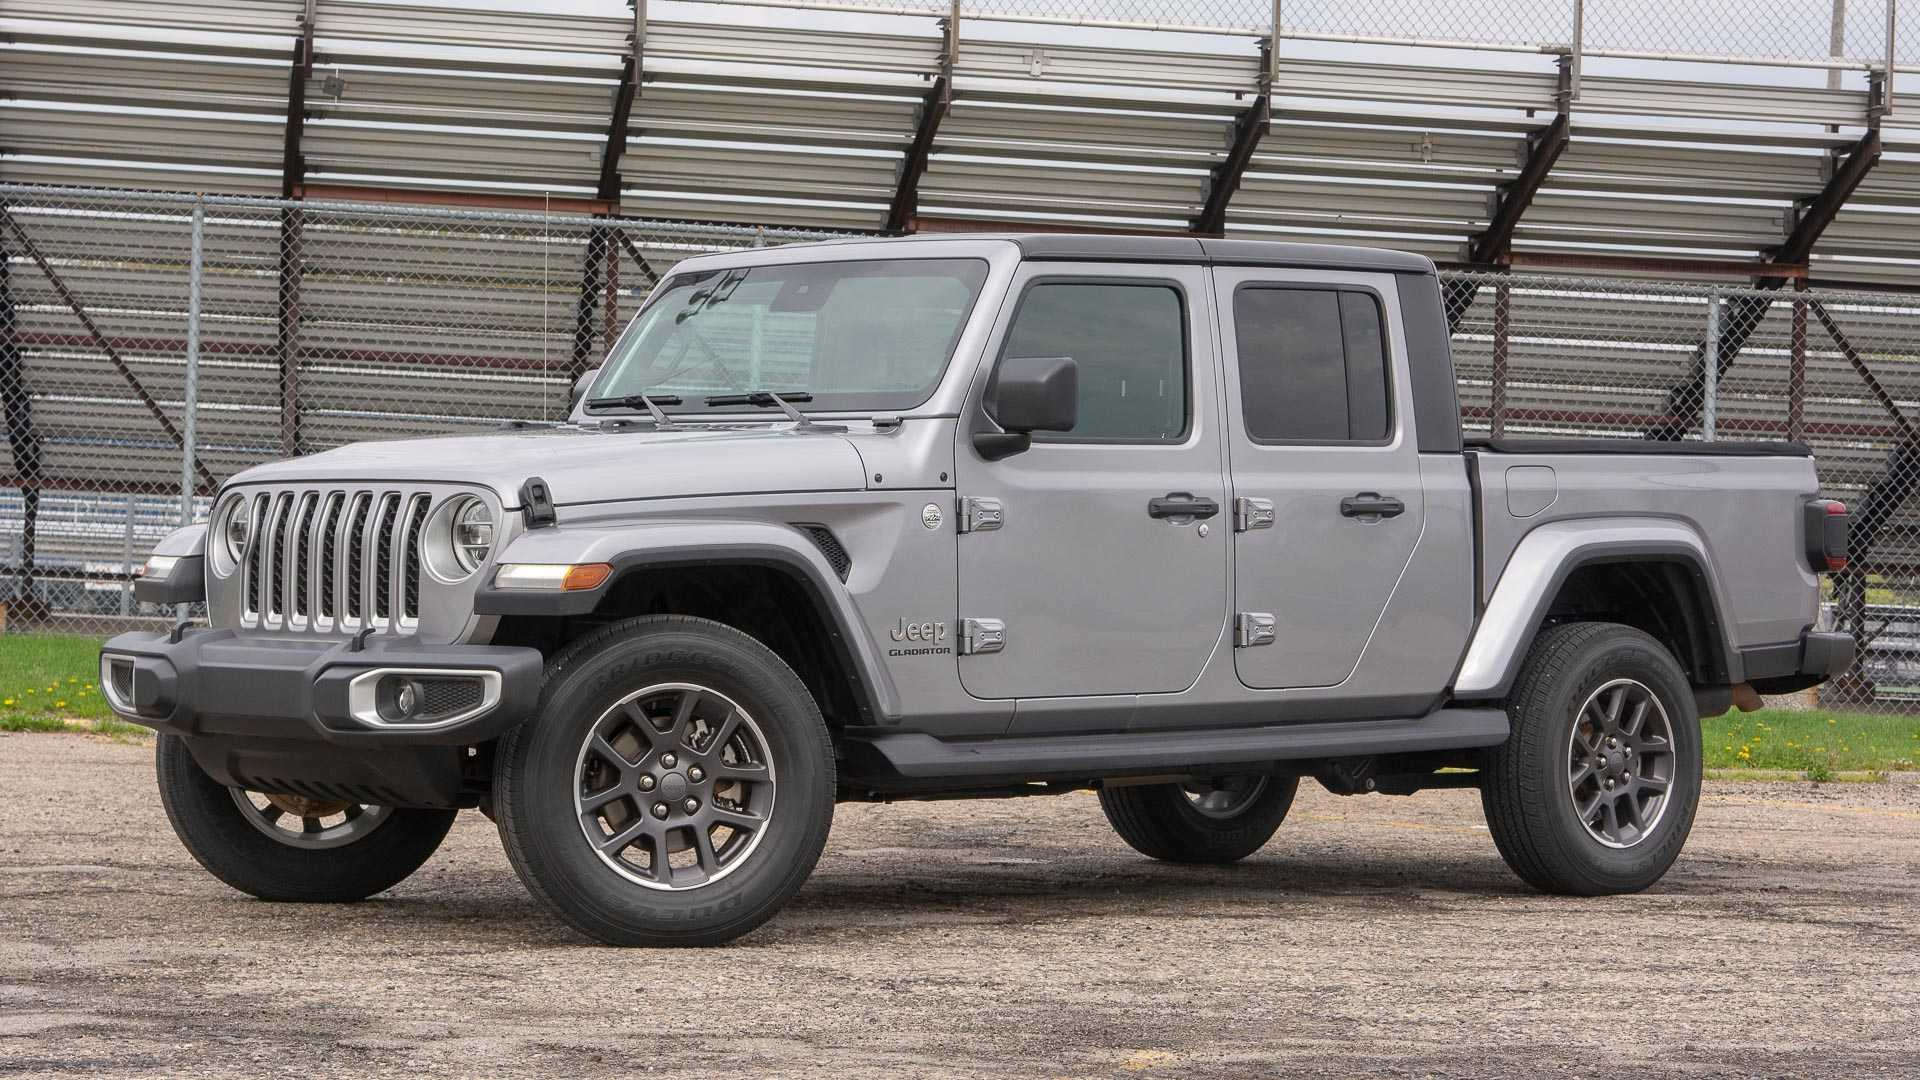 50 The Best 2020 Jeep Gladiator Color Options Price And Release Date